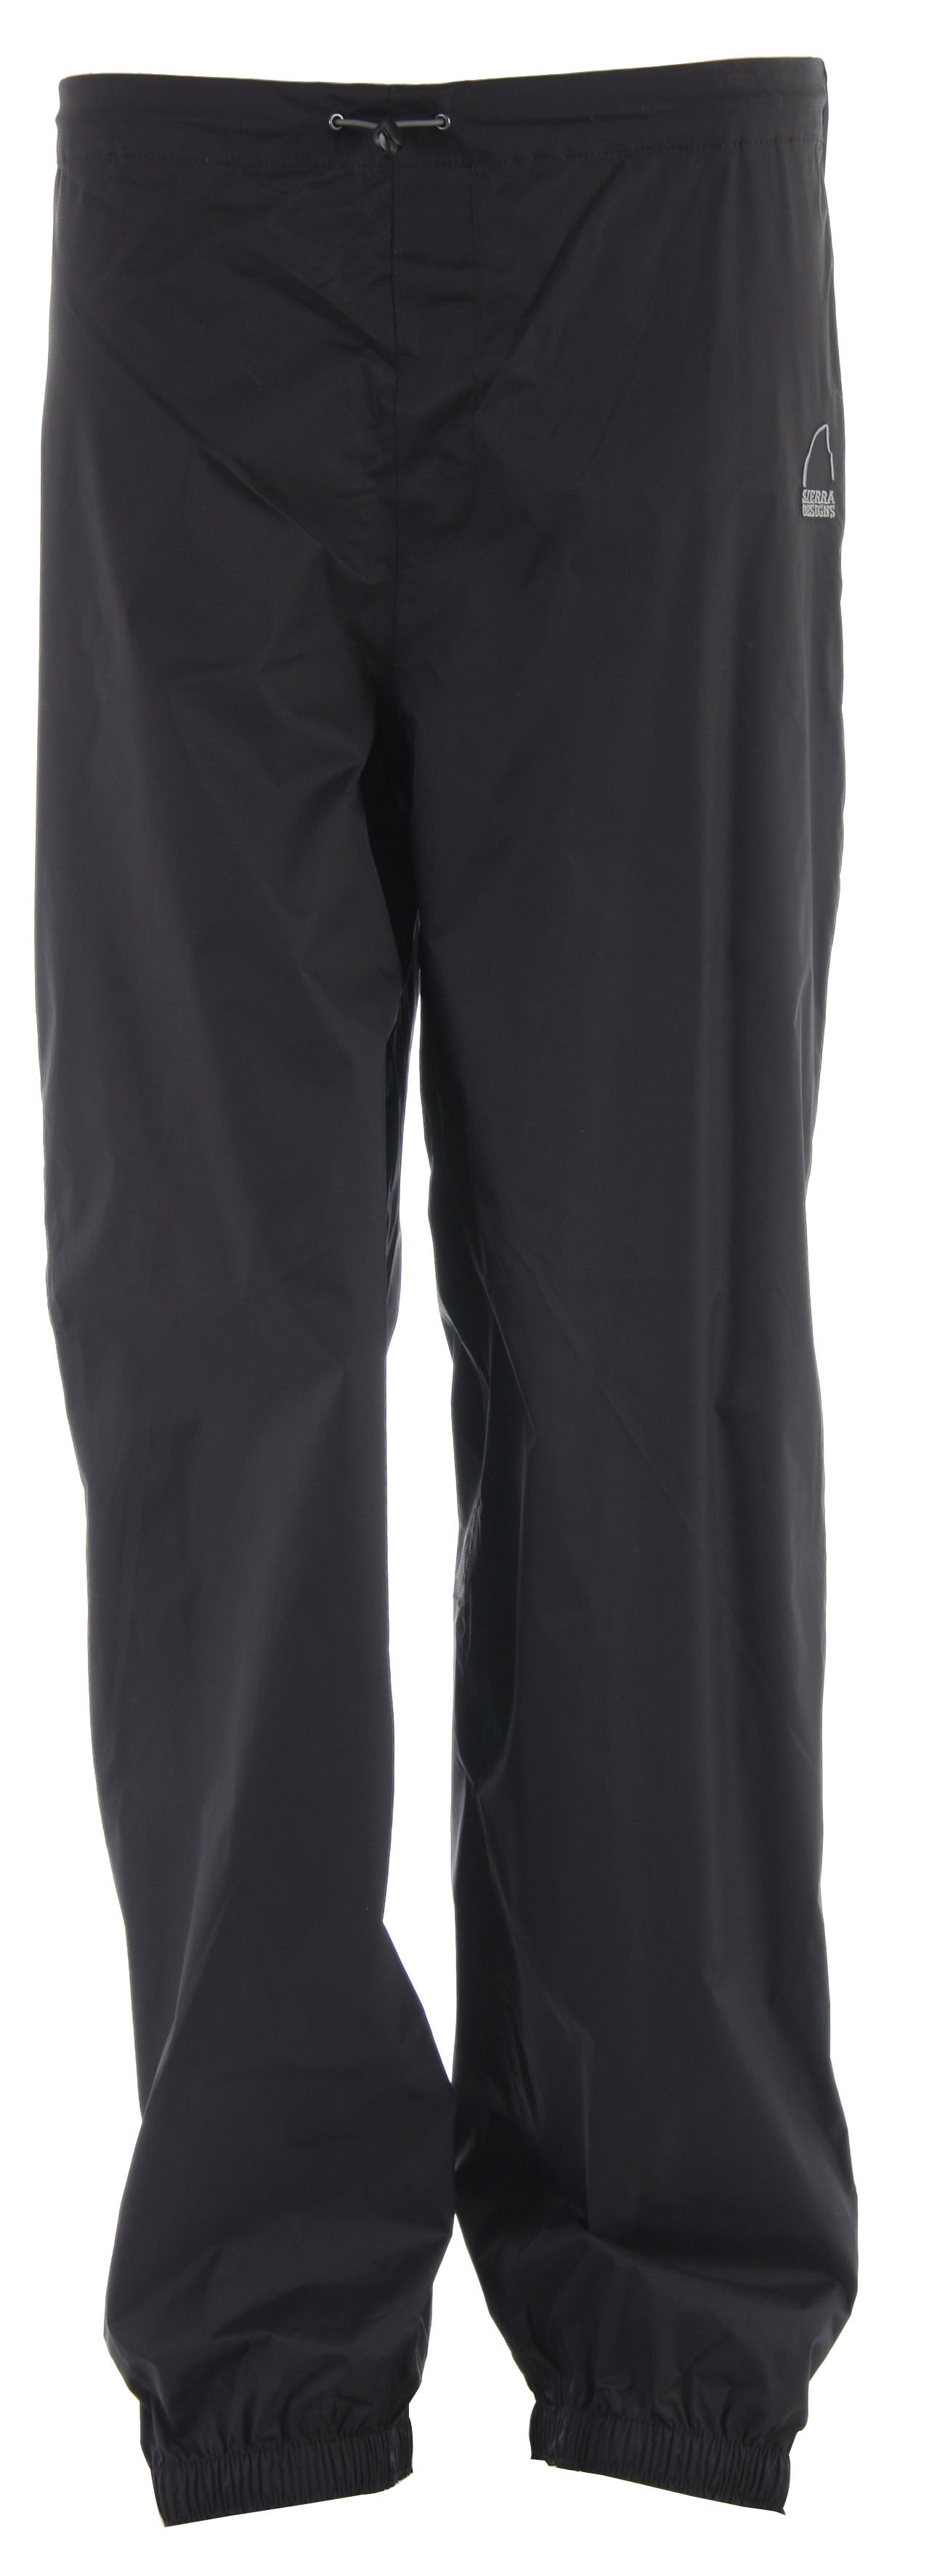 "There are lots of hiking pants you could wear, but Sierra Designs Cyclone Pants for women are the only pair you need. Designed to give you the most protection so you can get the most out of your hikes, these pants are waterproof and breathable, come with an adjustable waist, and feature internal leg gaiters. Once you try on a pair you'll wonder how you ever hiked without them. Key Features of the Sierra Designs Cyclone Rain Pants:  10,000mm Waterproof  8,000g Breathability  Fully Taped PVC-Free Seams  Thigh Pocket with Waterproof Zippers  Fly Front  Full 2-Way Side Zip  Lower Leg Hook & Loop Adjustment  Wrap Around Scuff Guard  Internal Leg Gaiter  Inseam Length 31"" (L   Materials: Green 2.5L (10,000/8,000  Recycled Polyester; Textured Double Ripstop; Solvent-Free Laminate; 3.59 oz/yd; (122 g/sqm - $33.95"